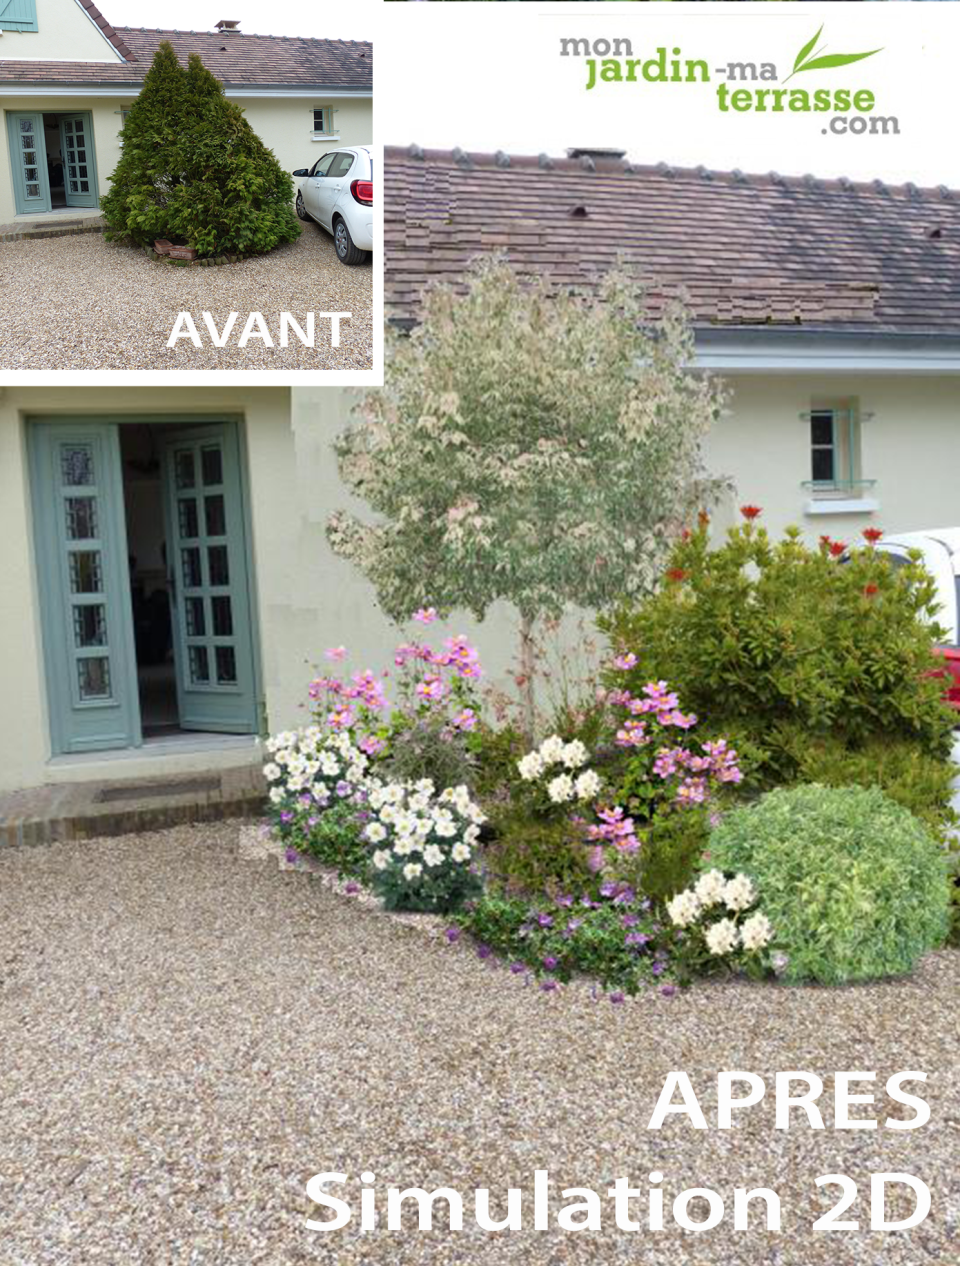 Am nagement d entr e ext rieur de maison monjardin for Amenagement maison exterieur